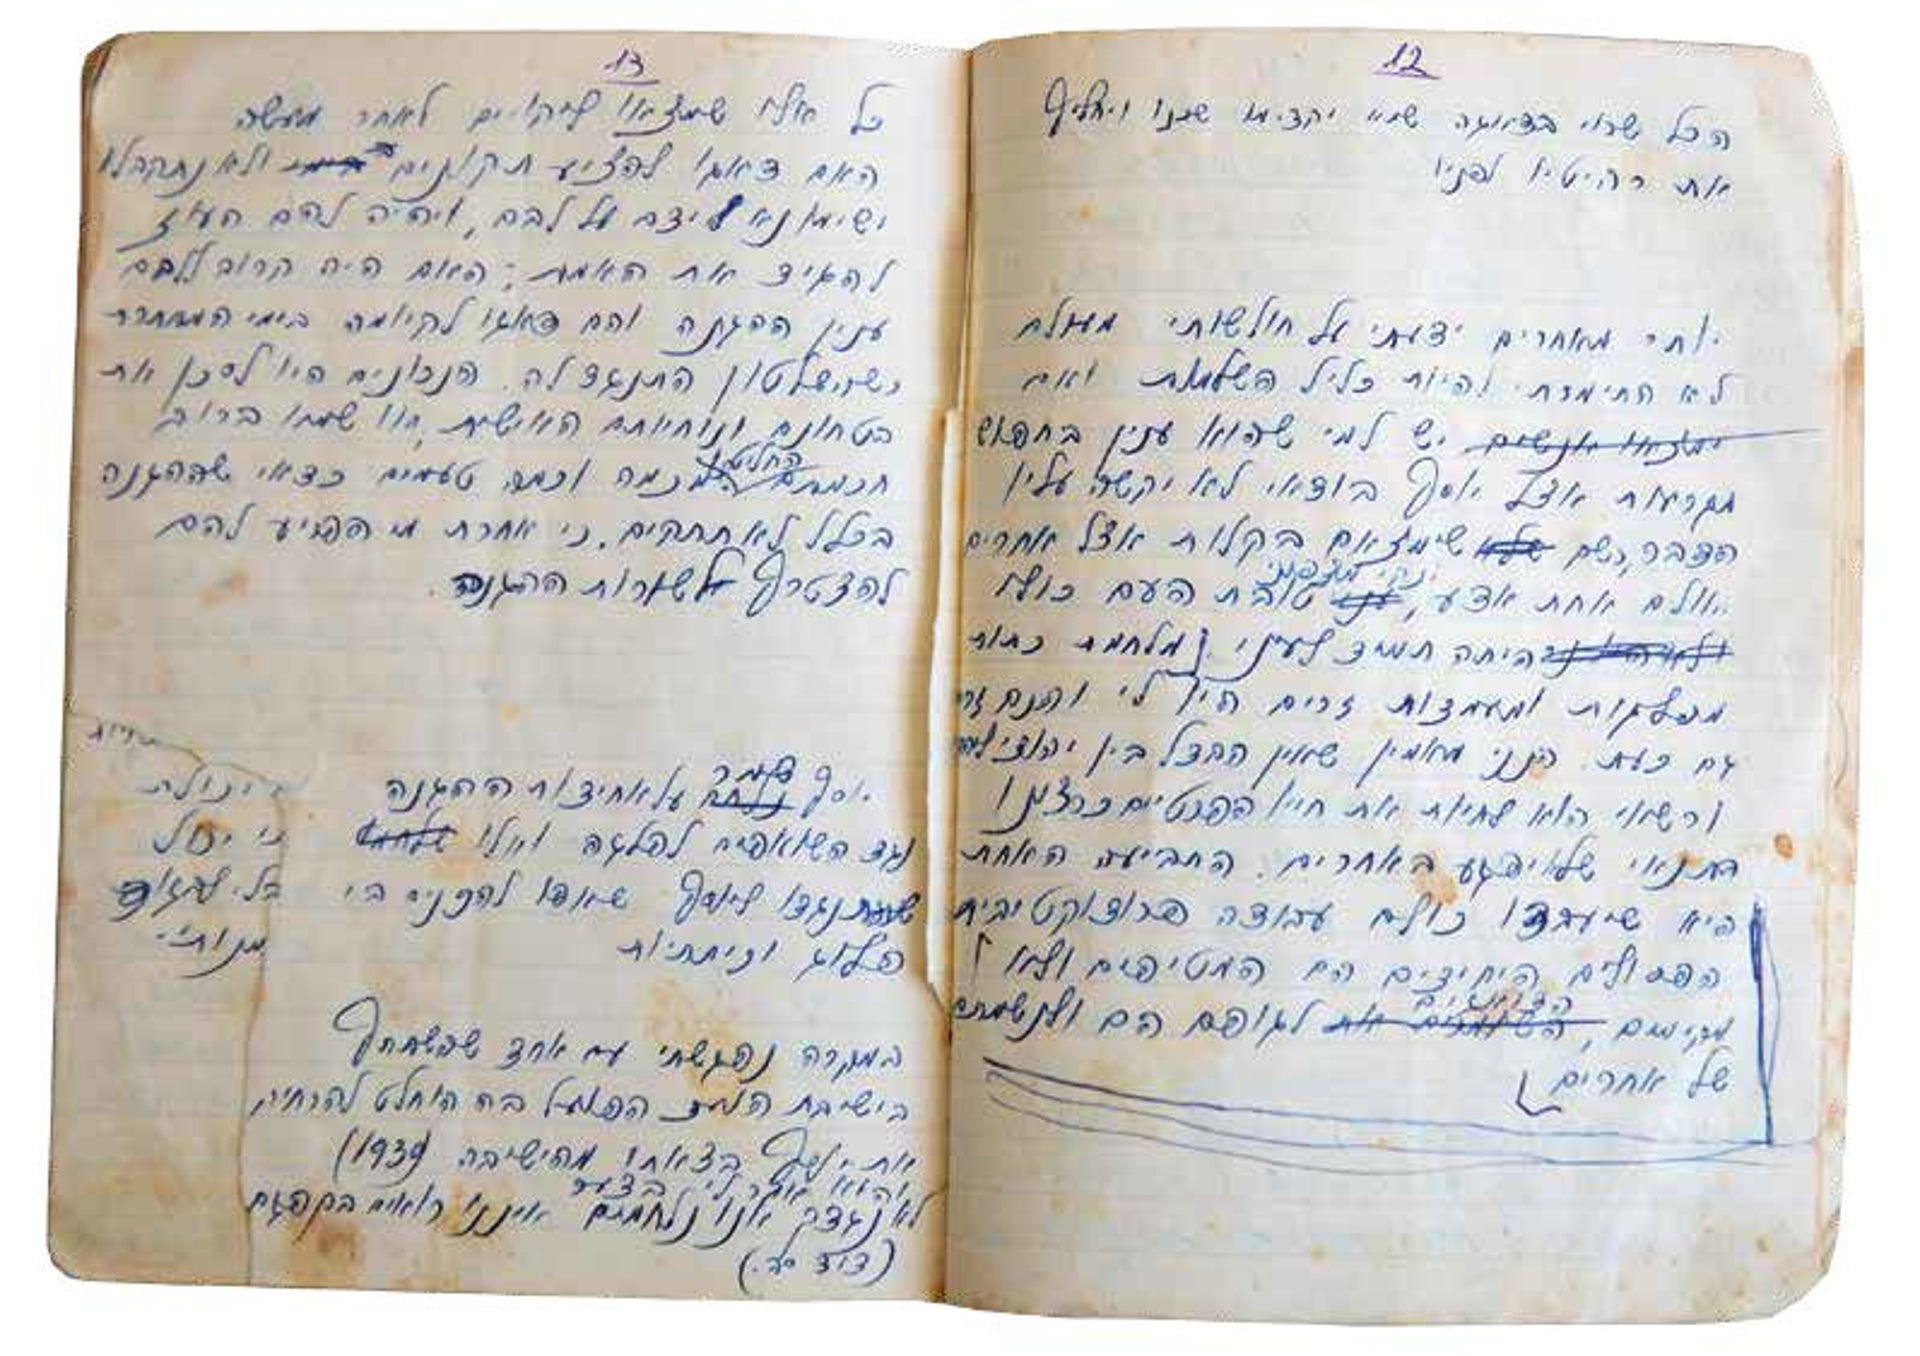 Hecht's notebook.